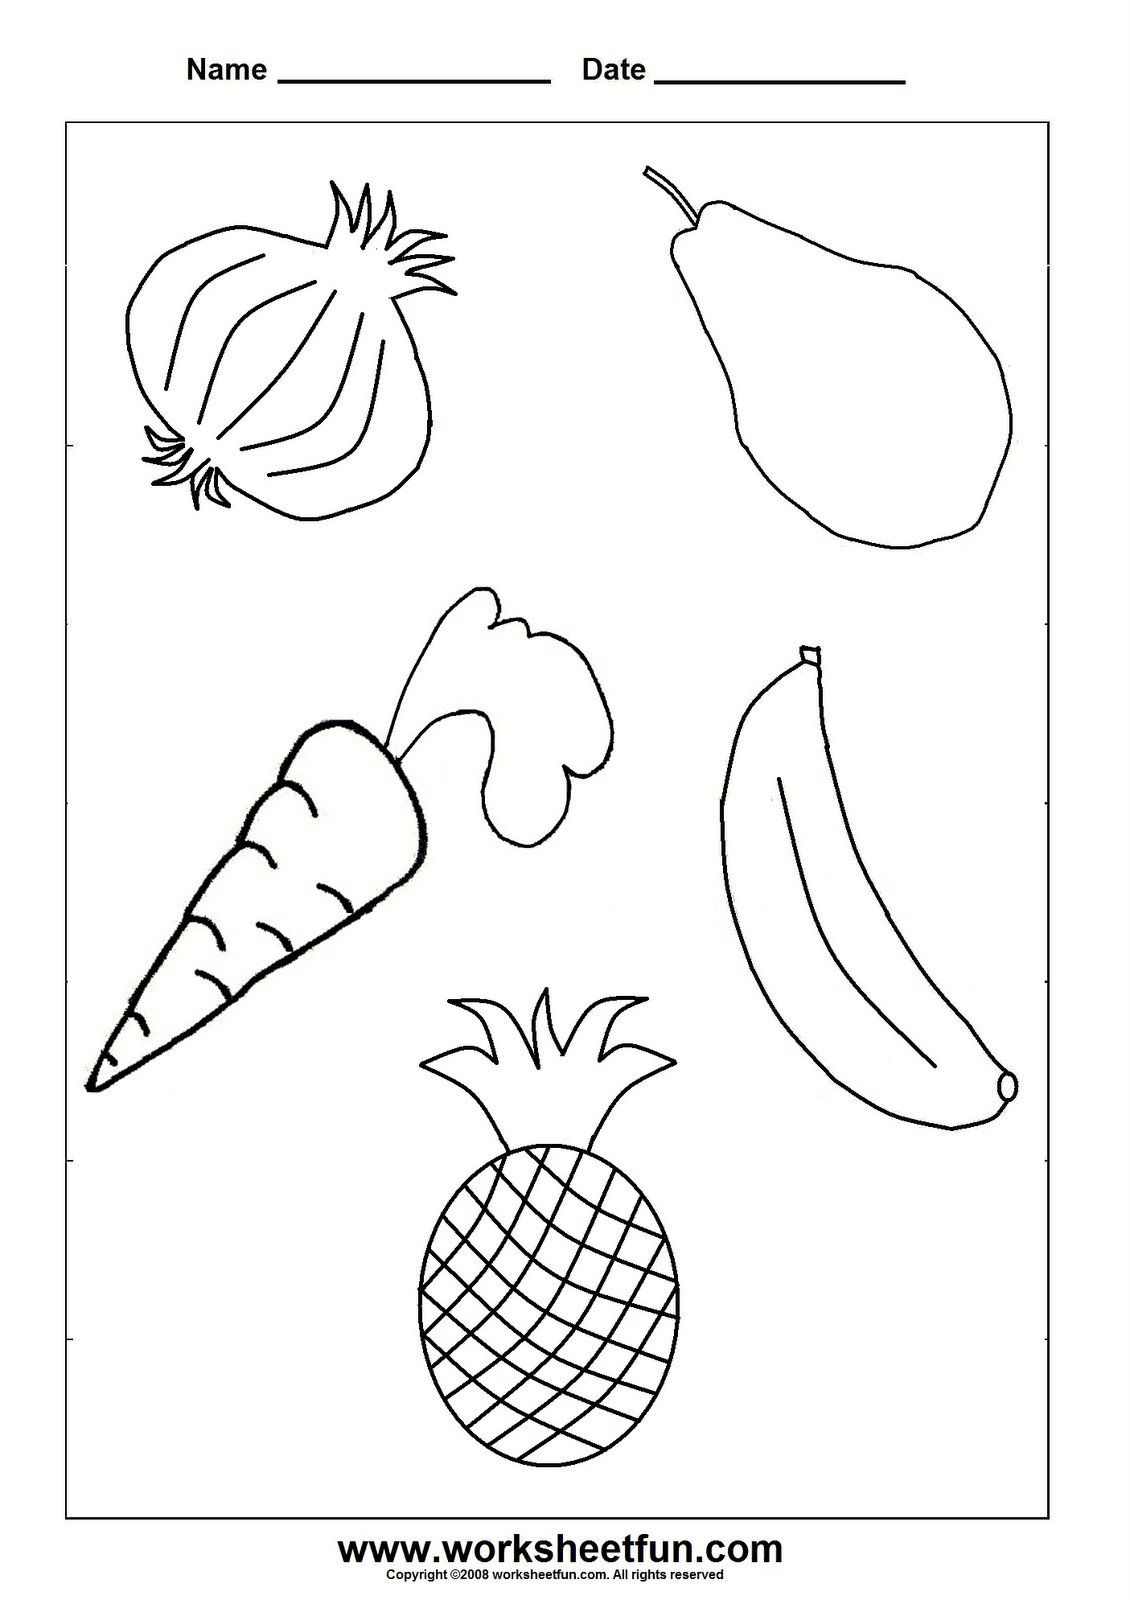 Preschool Fruits And Vegetables Worksheets – With Arts Crafts Also | Free Printable Arts And Crafts Worksheets